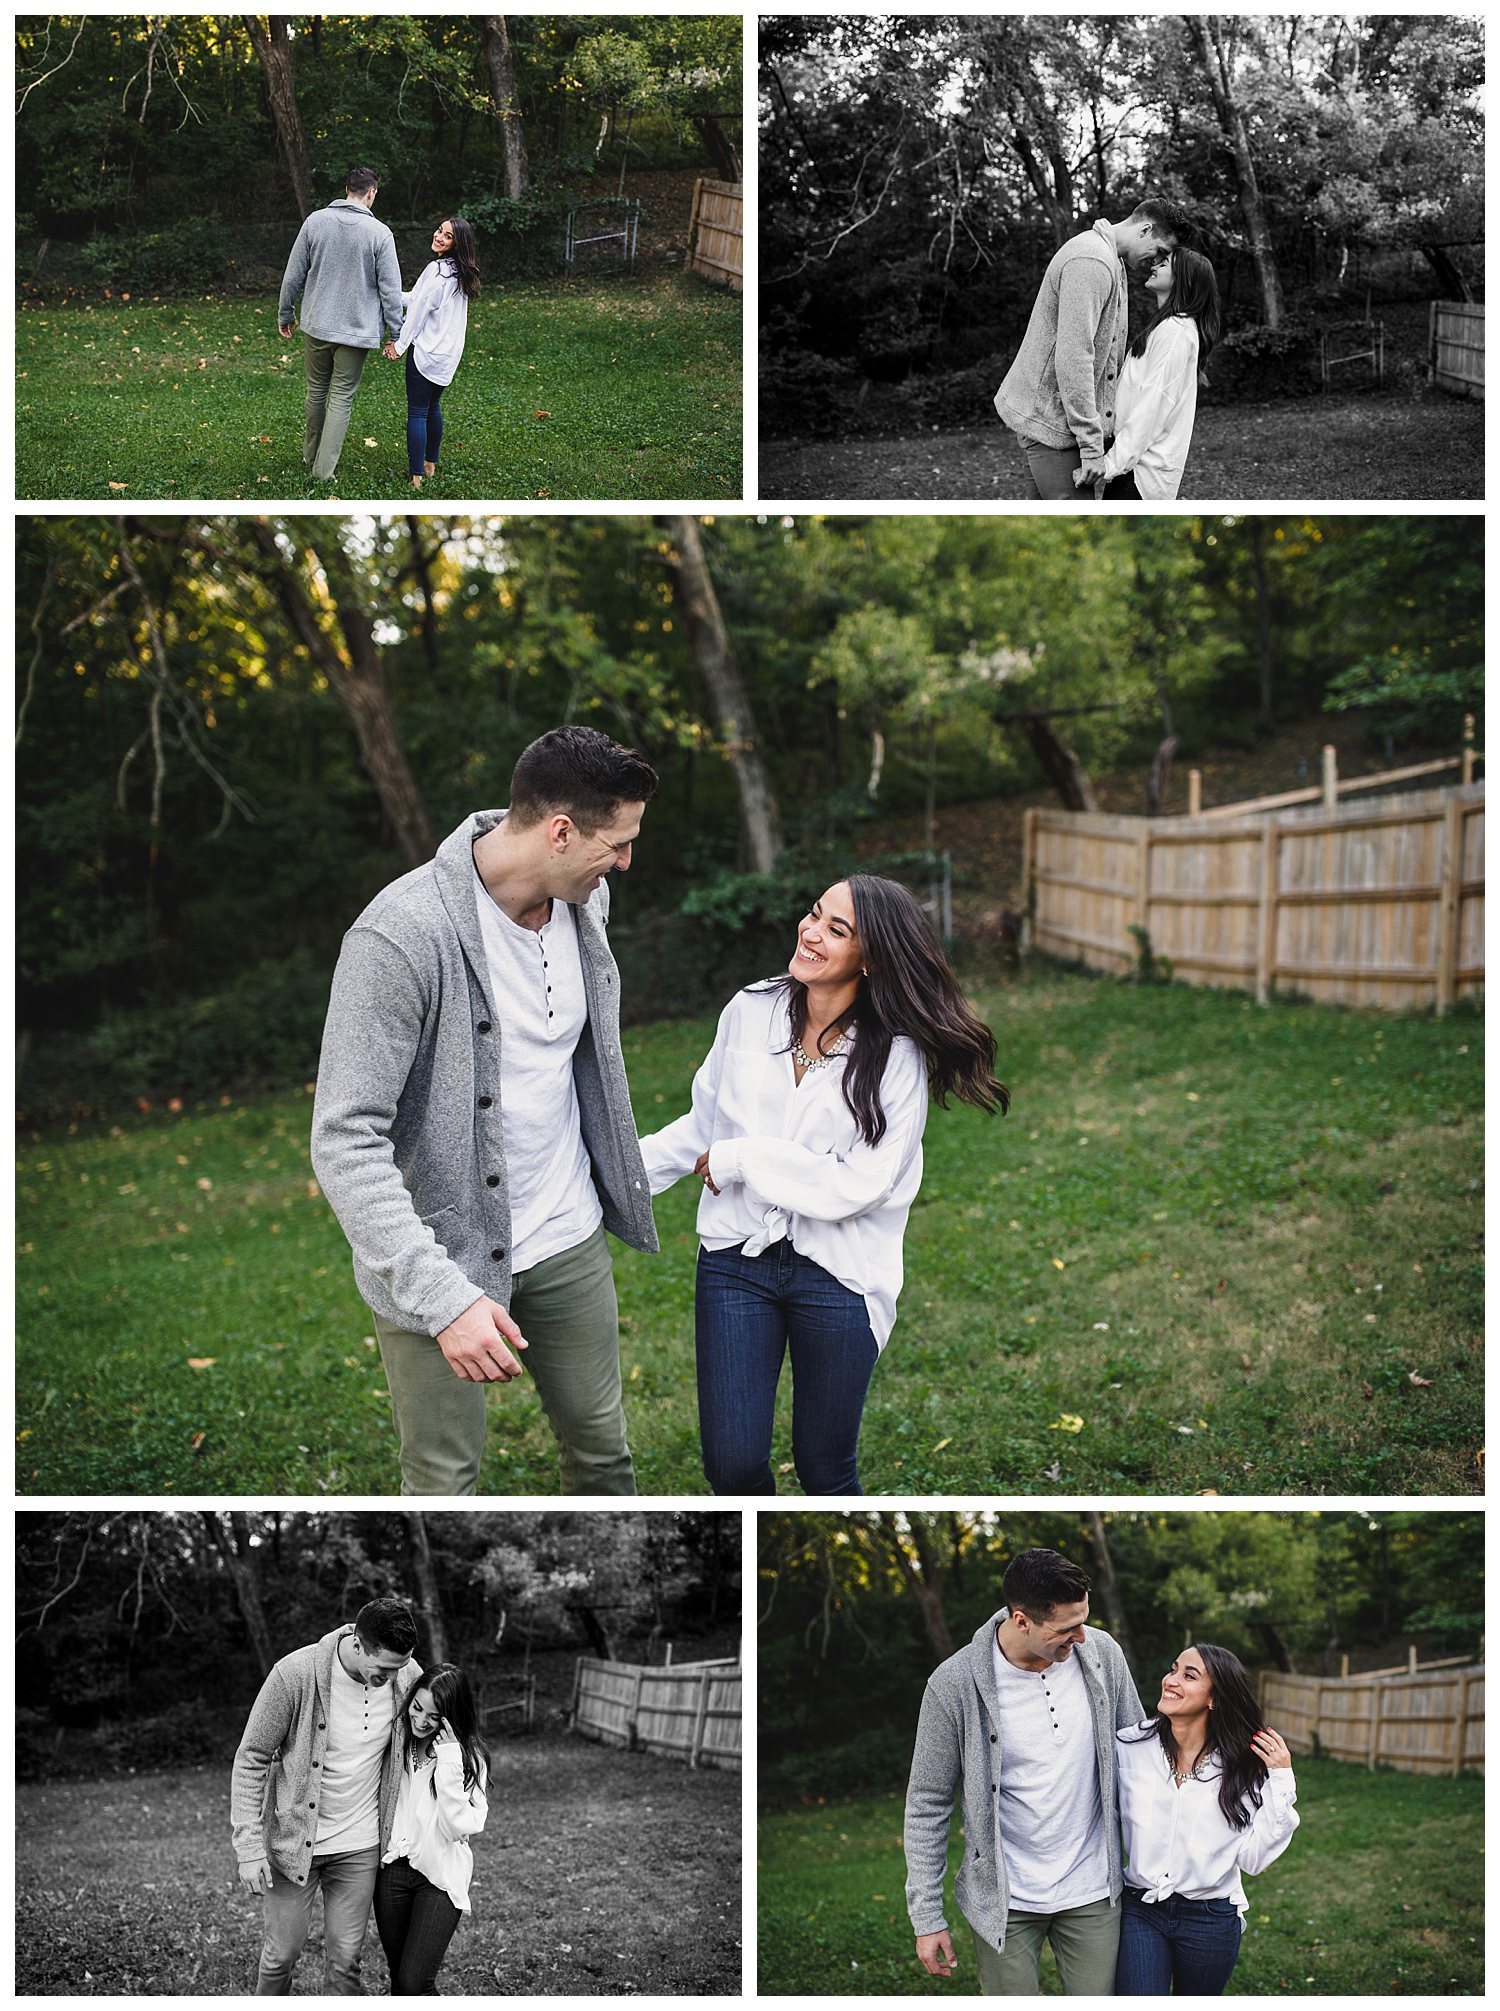 Kansas_City_Wedding_Photographer_Engagement_Kelsey_Diane_Photography_Midwest_Traveling_In_home_engagement_Session_Cassie_Austin_Parkville_Missouri_0886.jpg